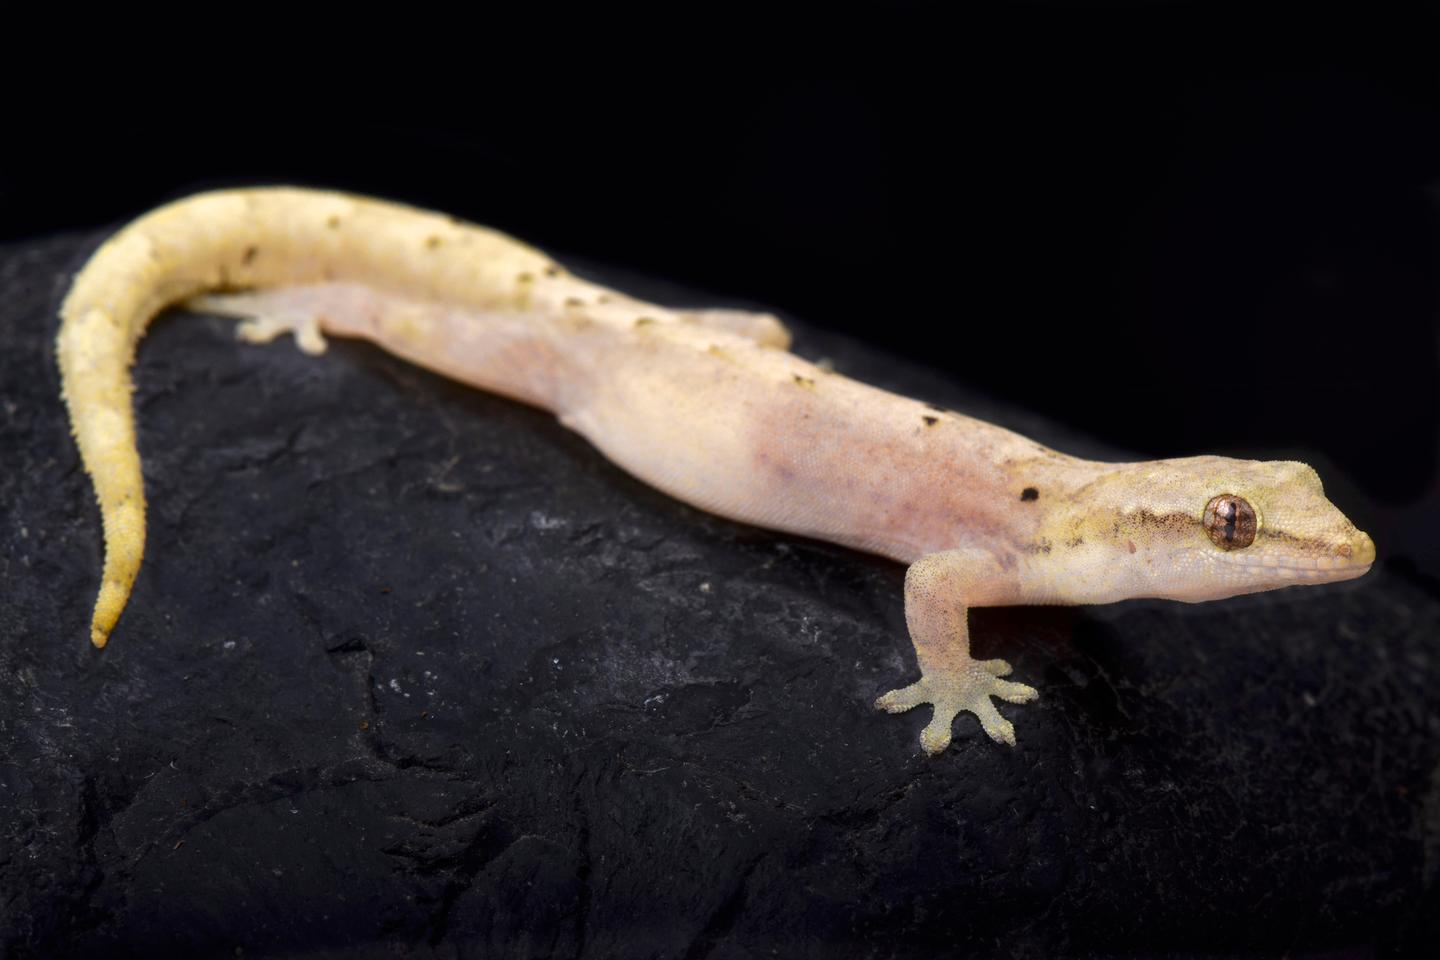 The Mourning gecko (Lepidodactylus lugubris) was the subject of the new study into regeneration